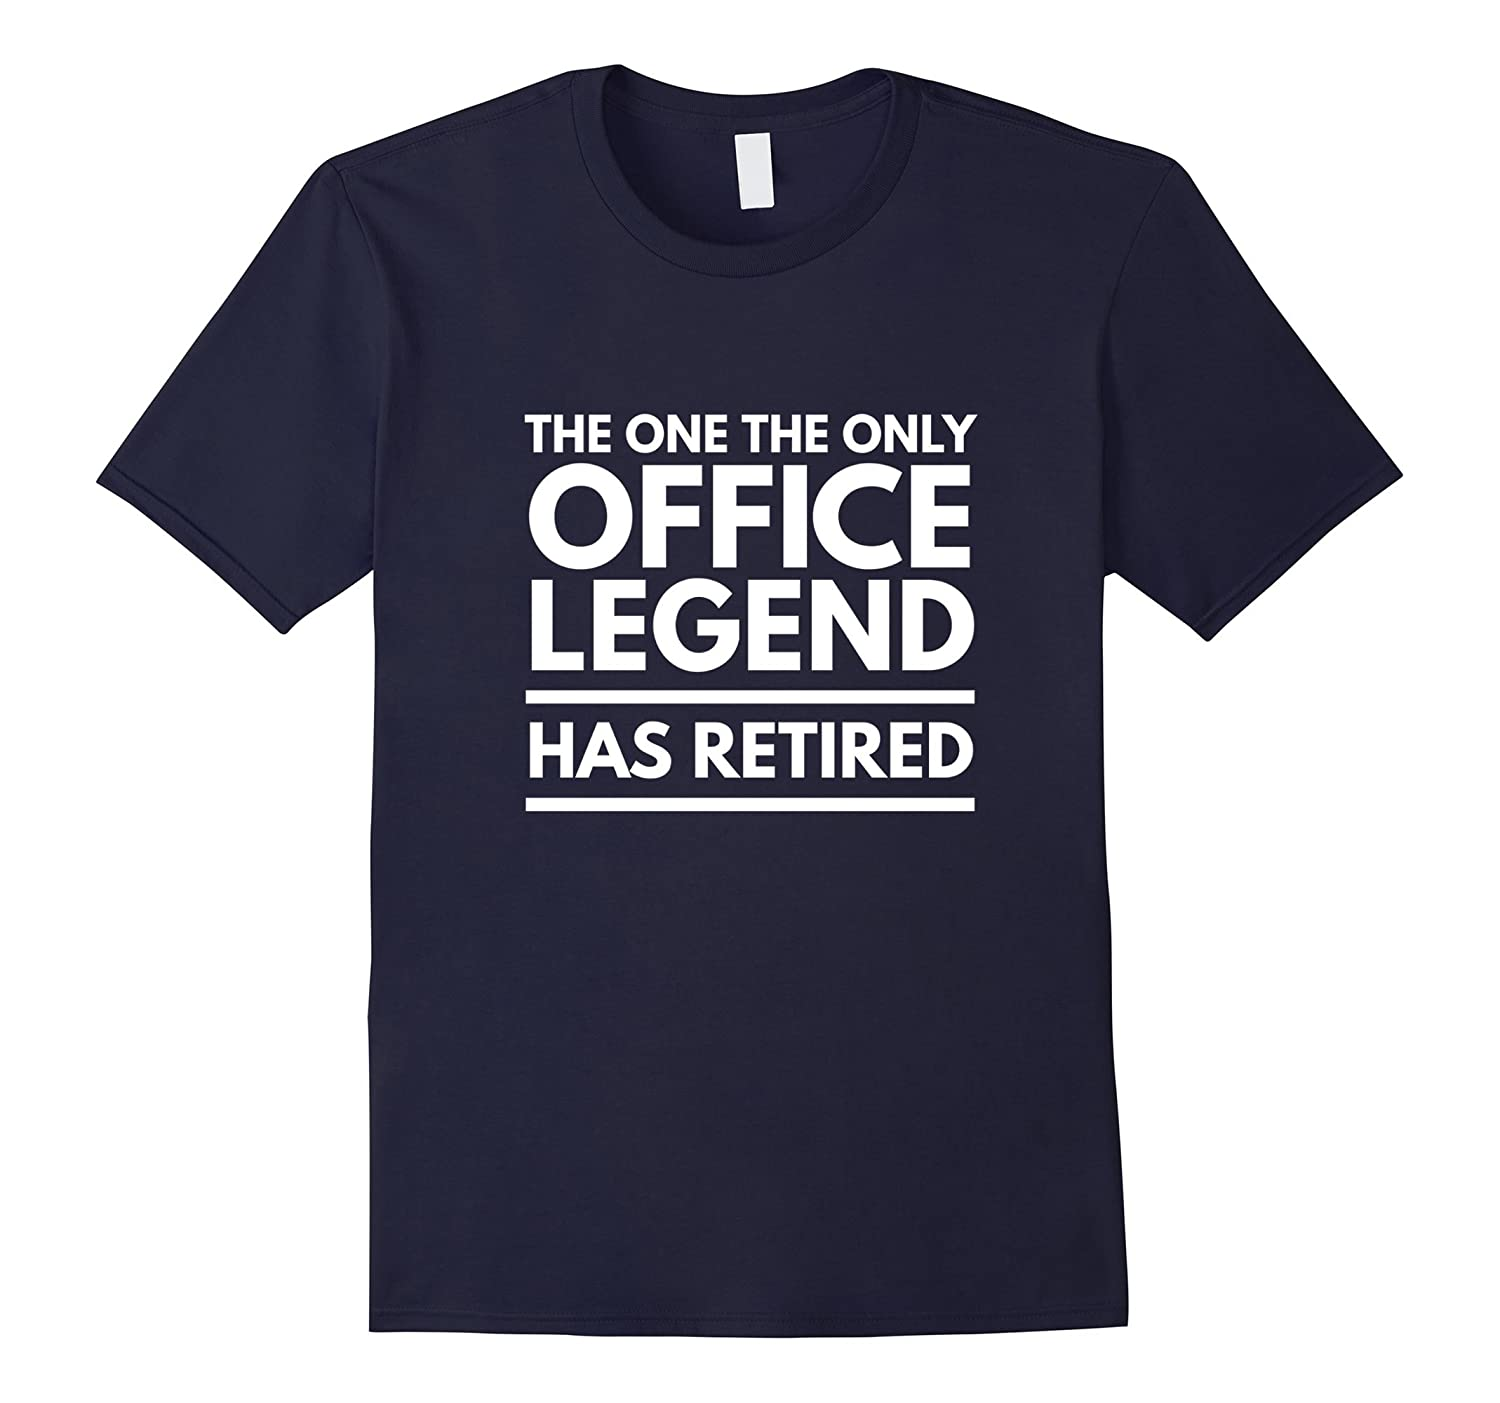 The one the only office legend has retired managers t-shirt-Vaci